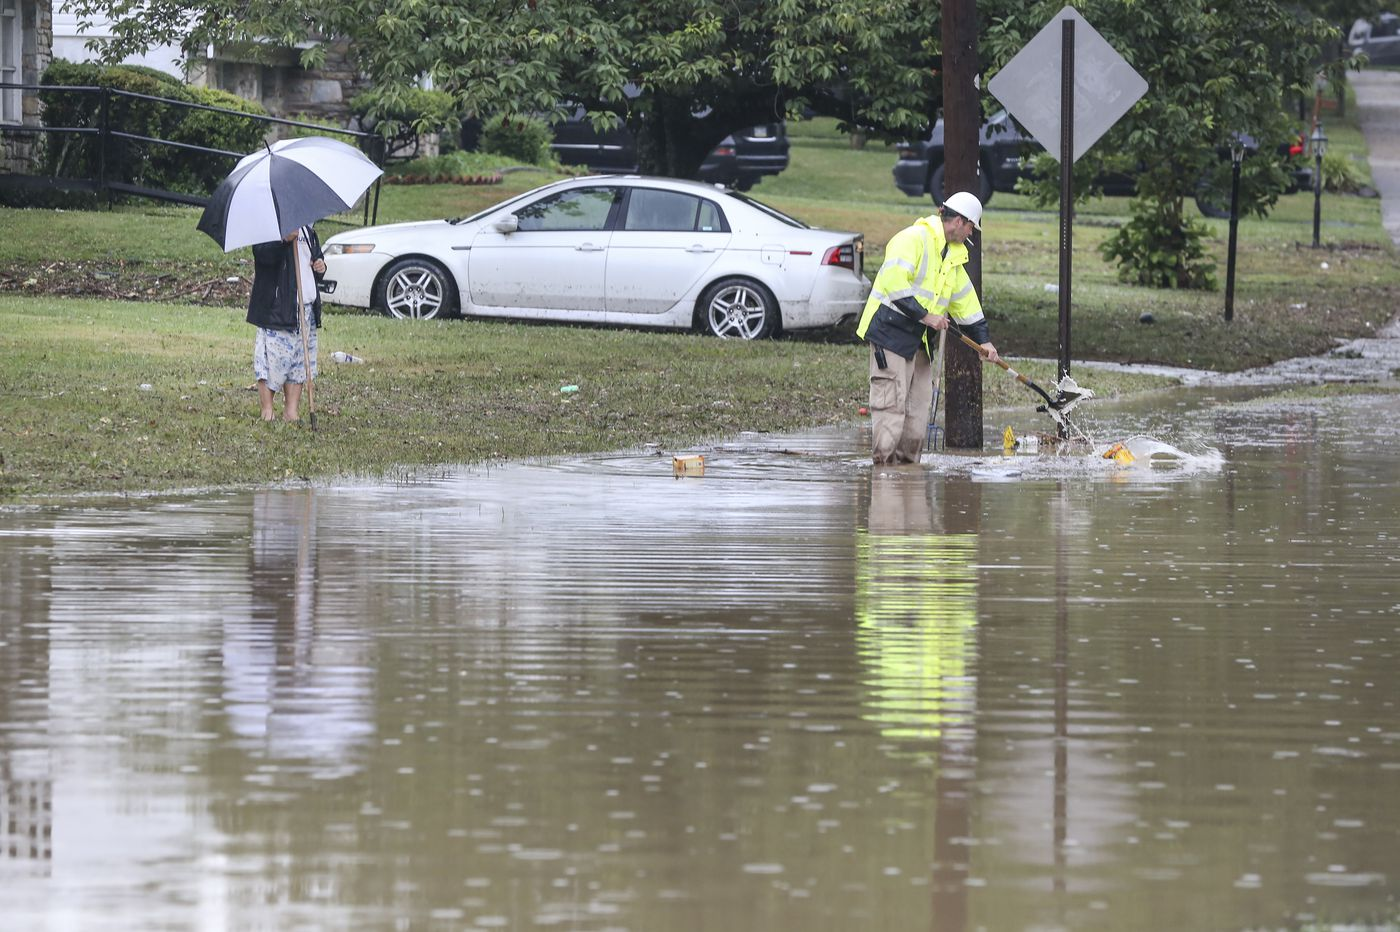 Flash floods in Philly area submerge cars; 'ring of fire' storms produce nearly 6 inches of rain, and hail